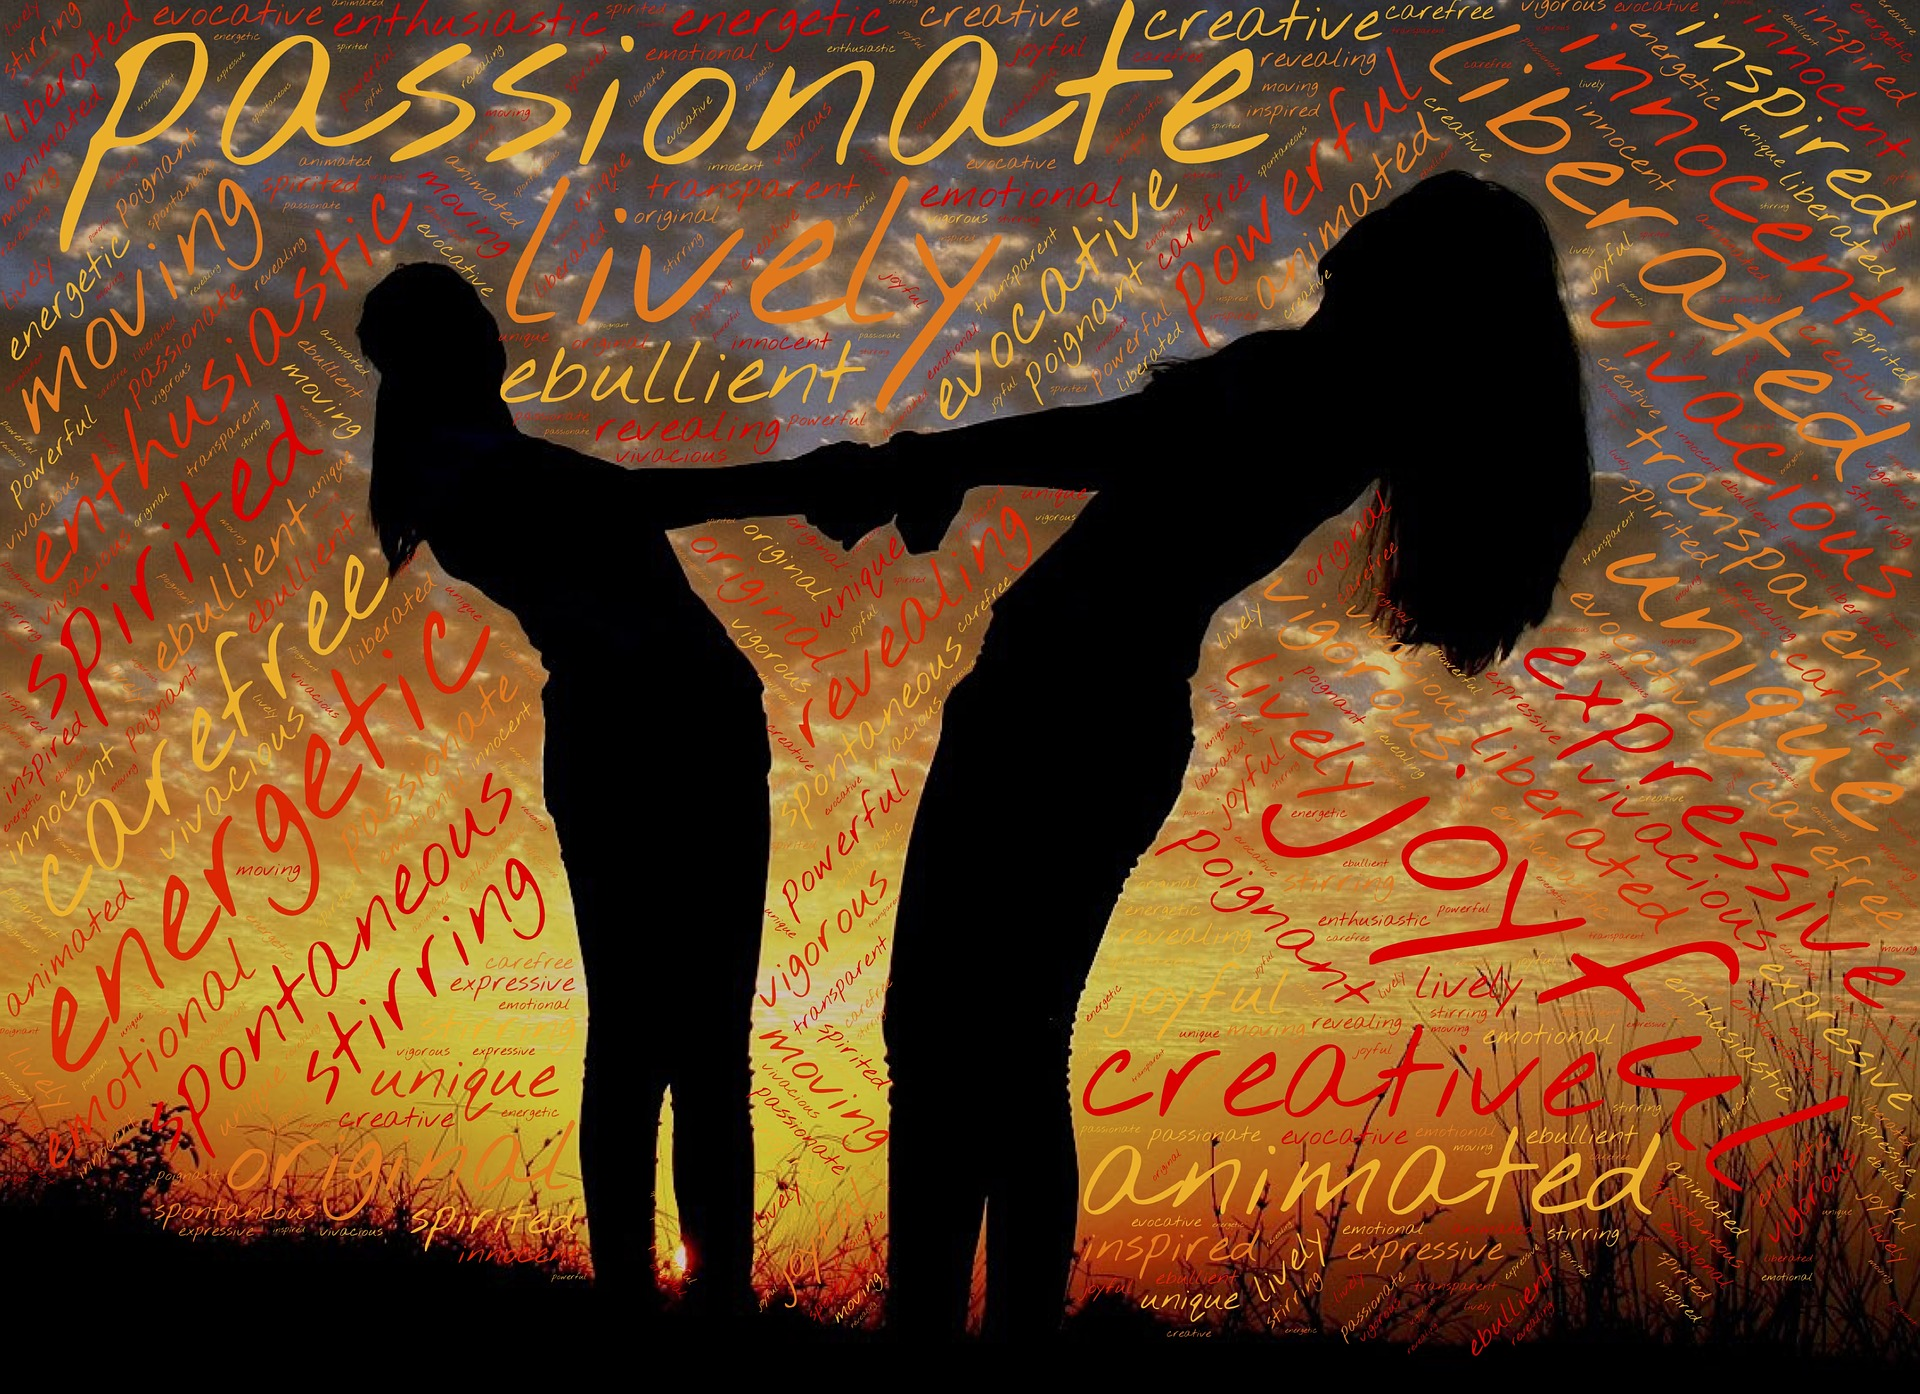 Live with passion La Luz Therapy www.laluztherapy.com reiki meditation wellness vocal sound therapy Lucy Toppetta